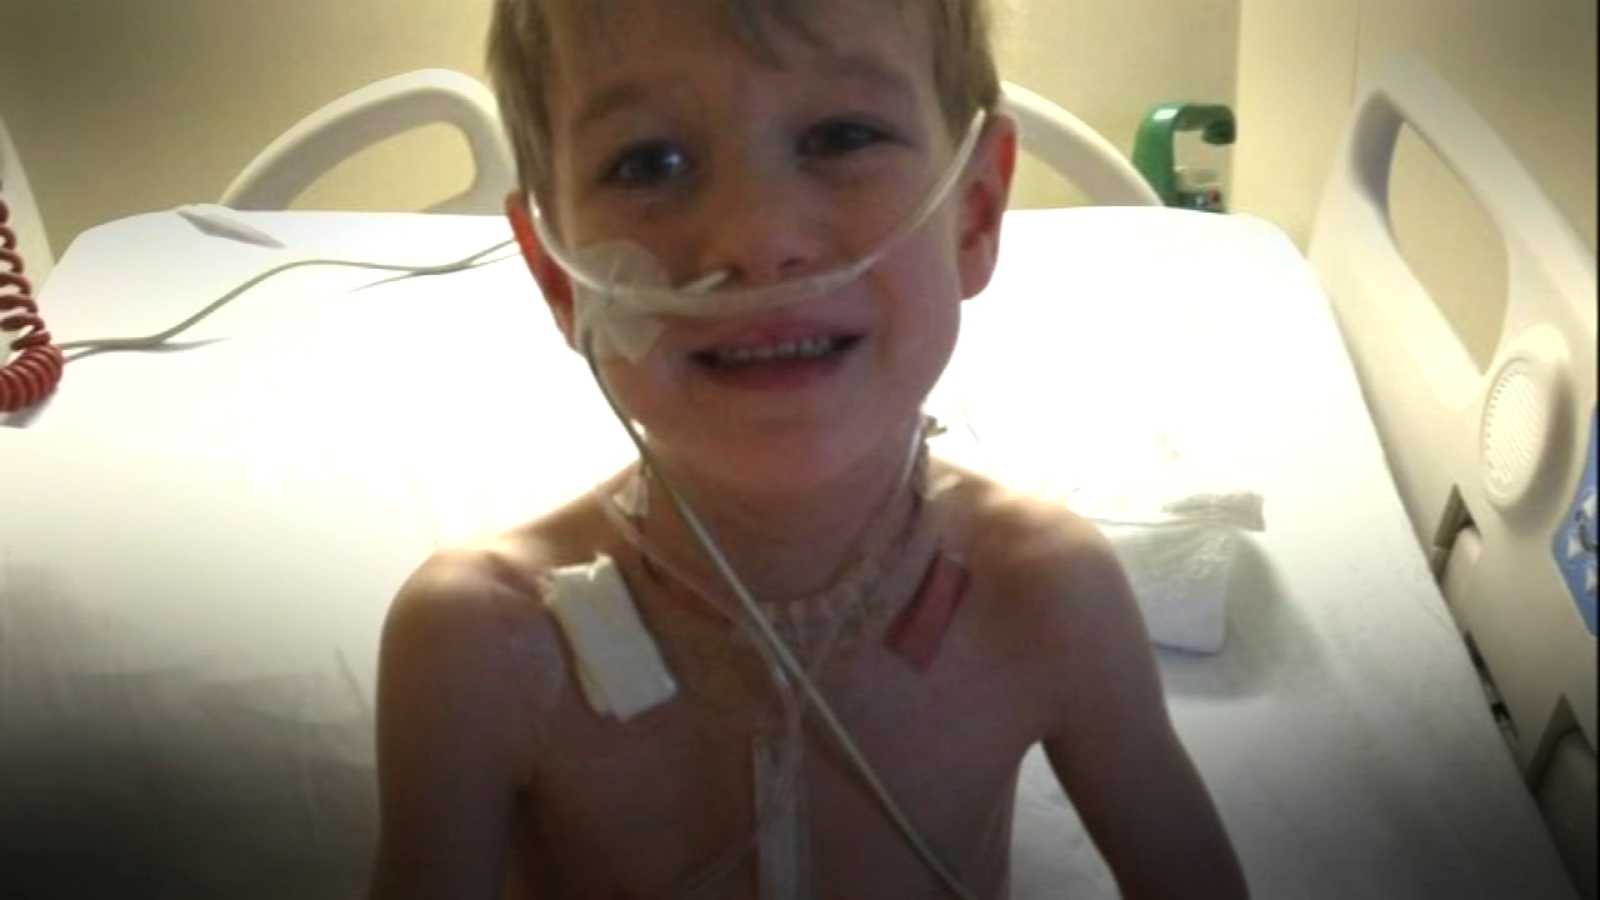 New Cancer Drug Promising Treatment Saves 9 Year Old Boy With